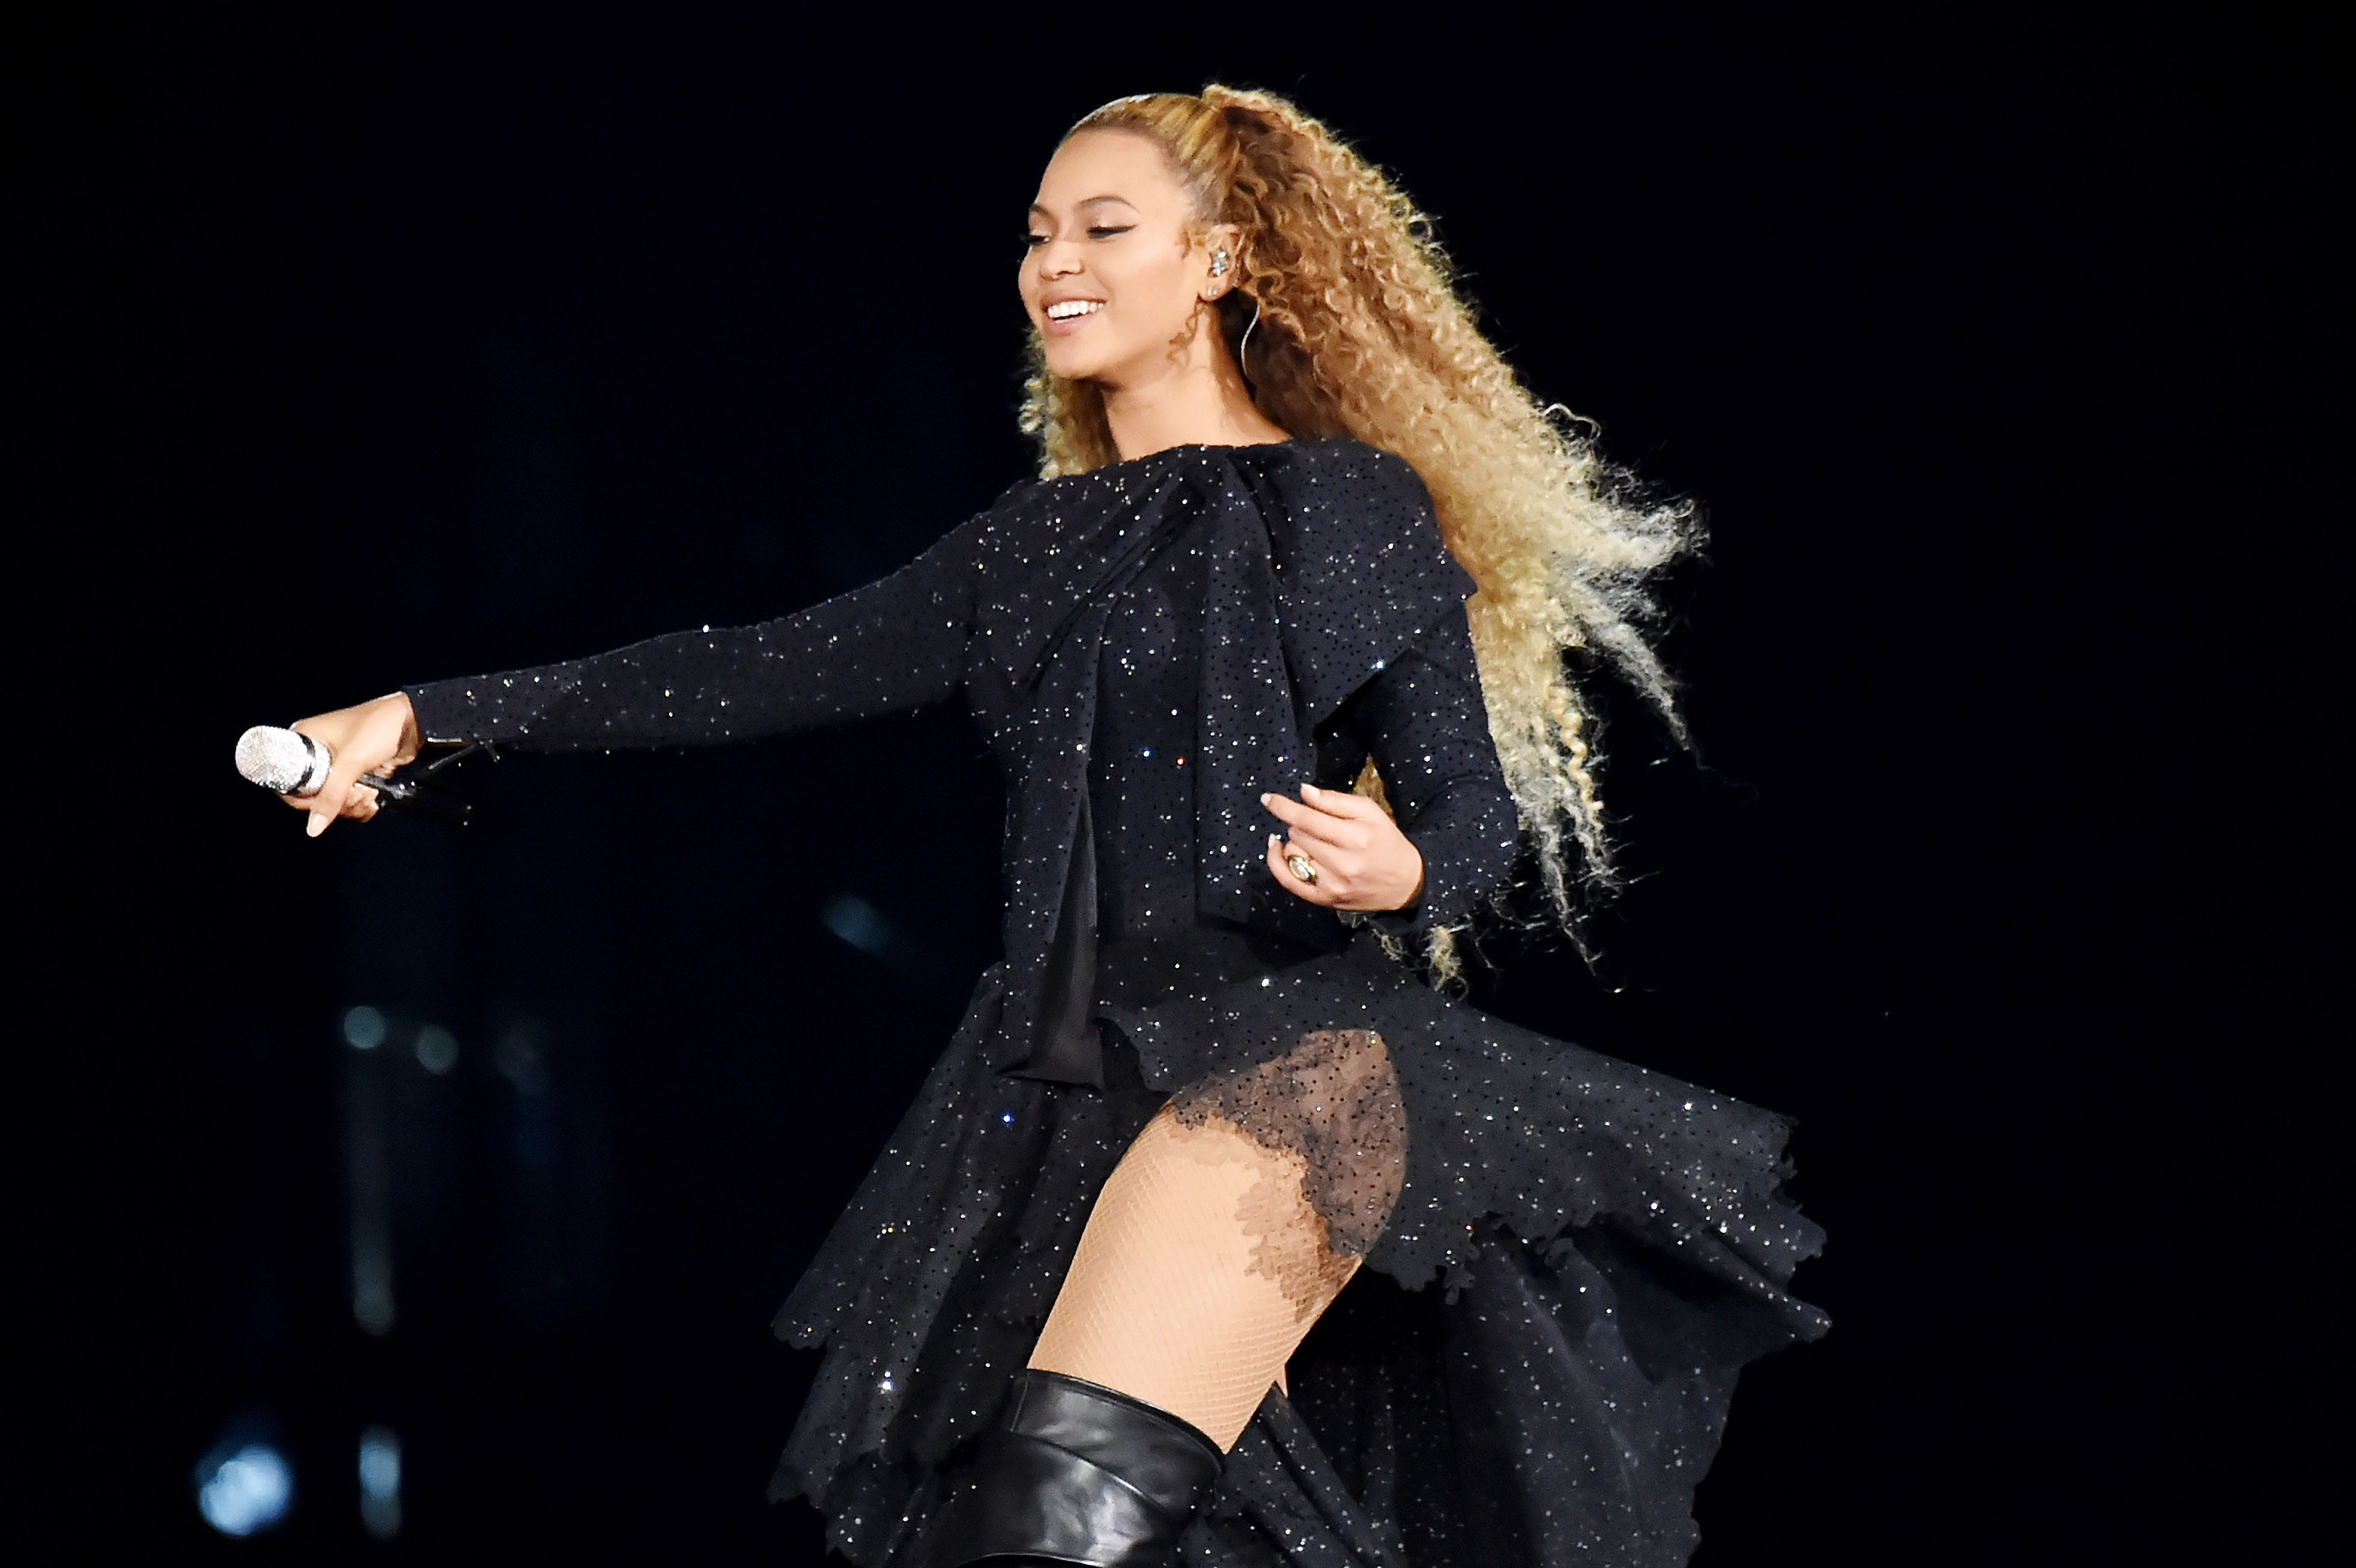 Beyonce and Jay-Z 'On the Run II' Tour Opener - Cardiff